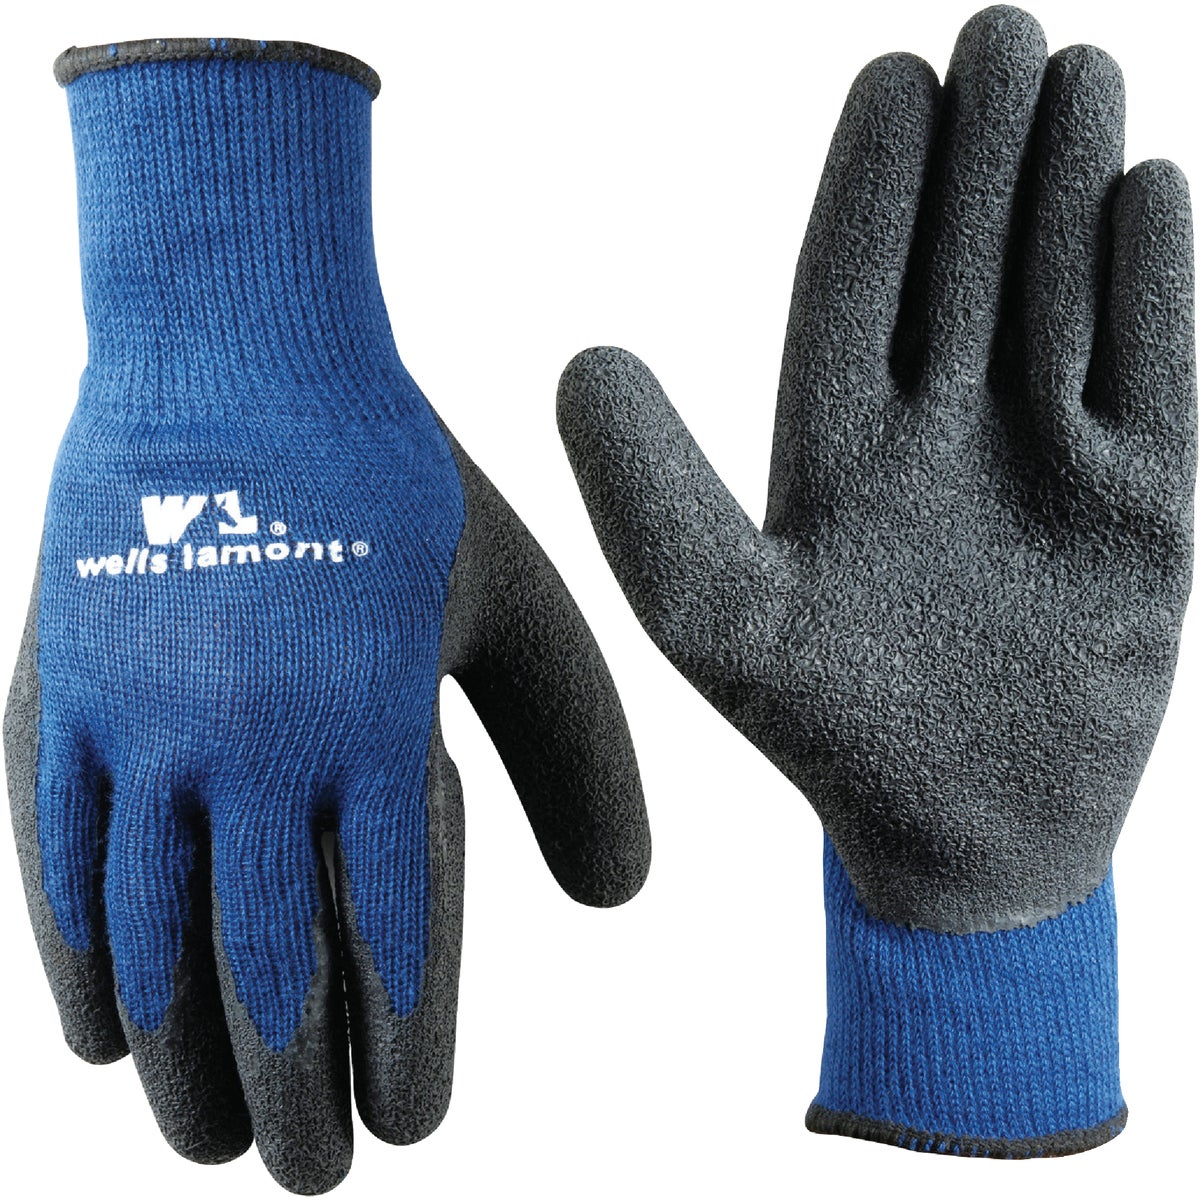 LG LATEX COATED GLOVE